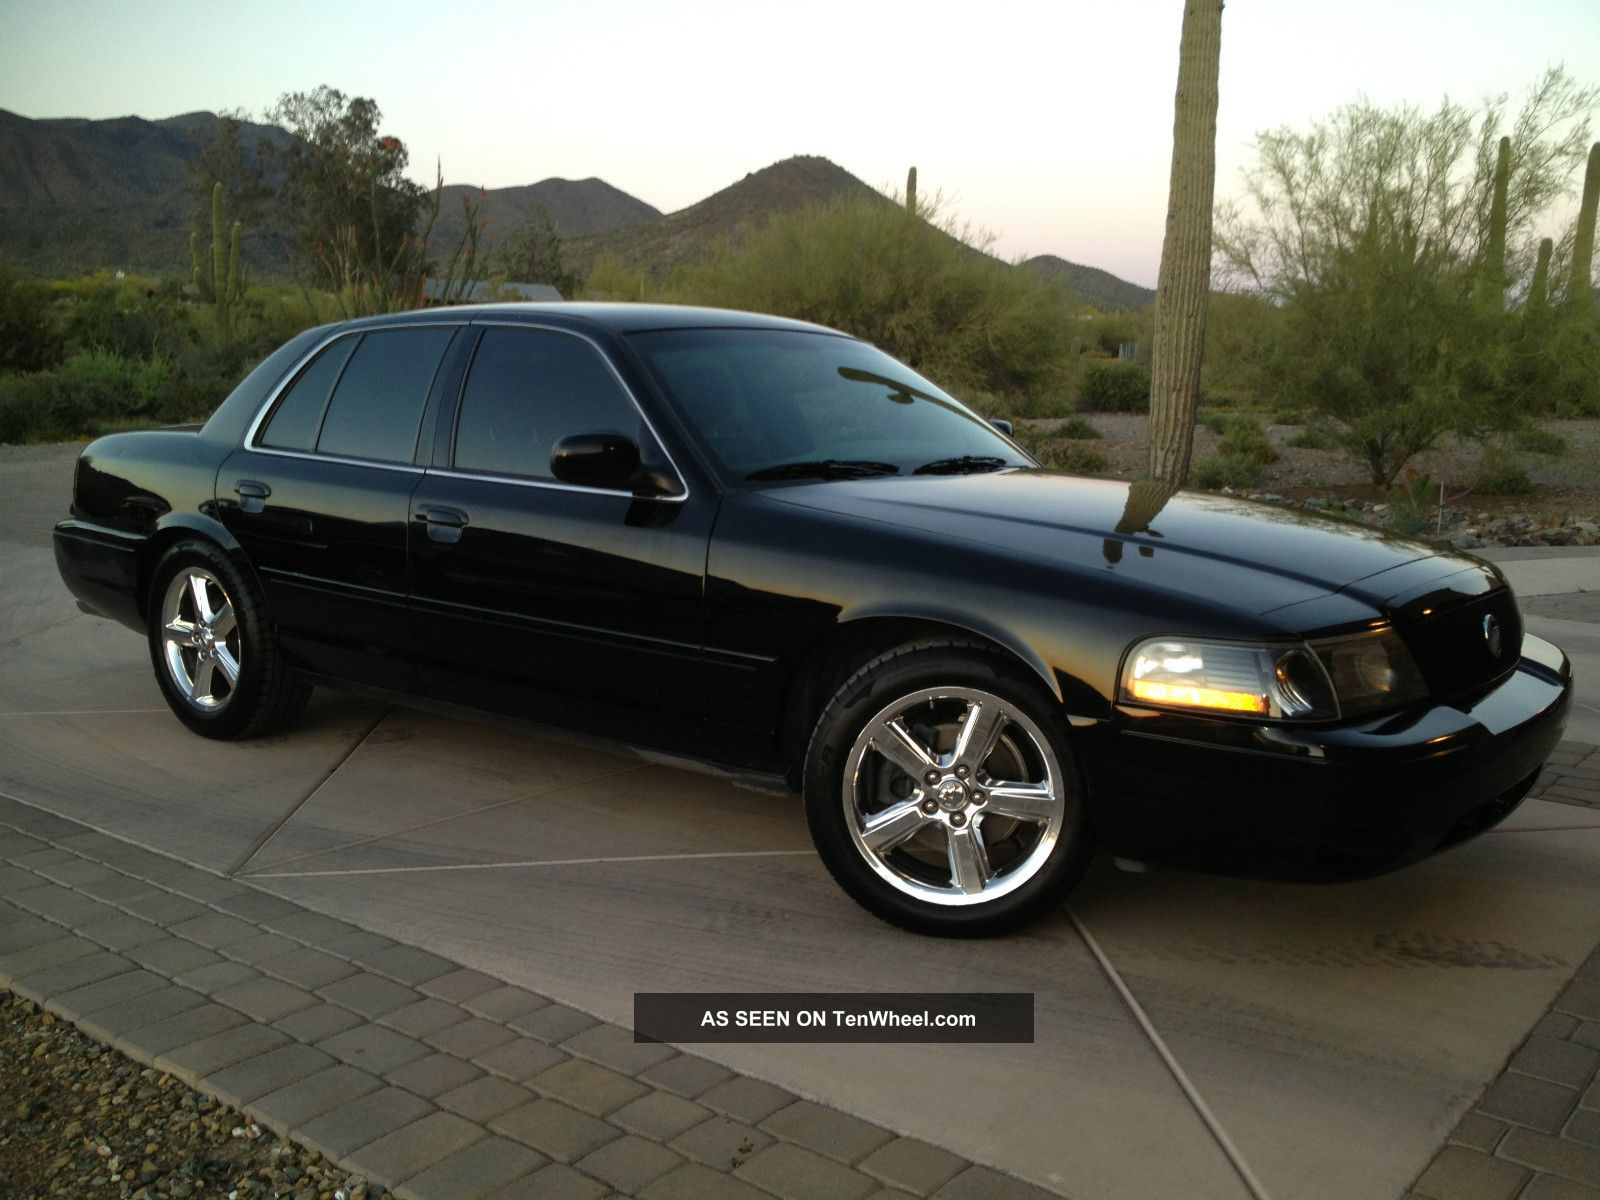 2003 mercury marauder 4 door sedan 4 6l dohc 32v v8 302hp. Black Bedroom Furniture Sets. Home Design Ideas